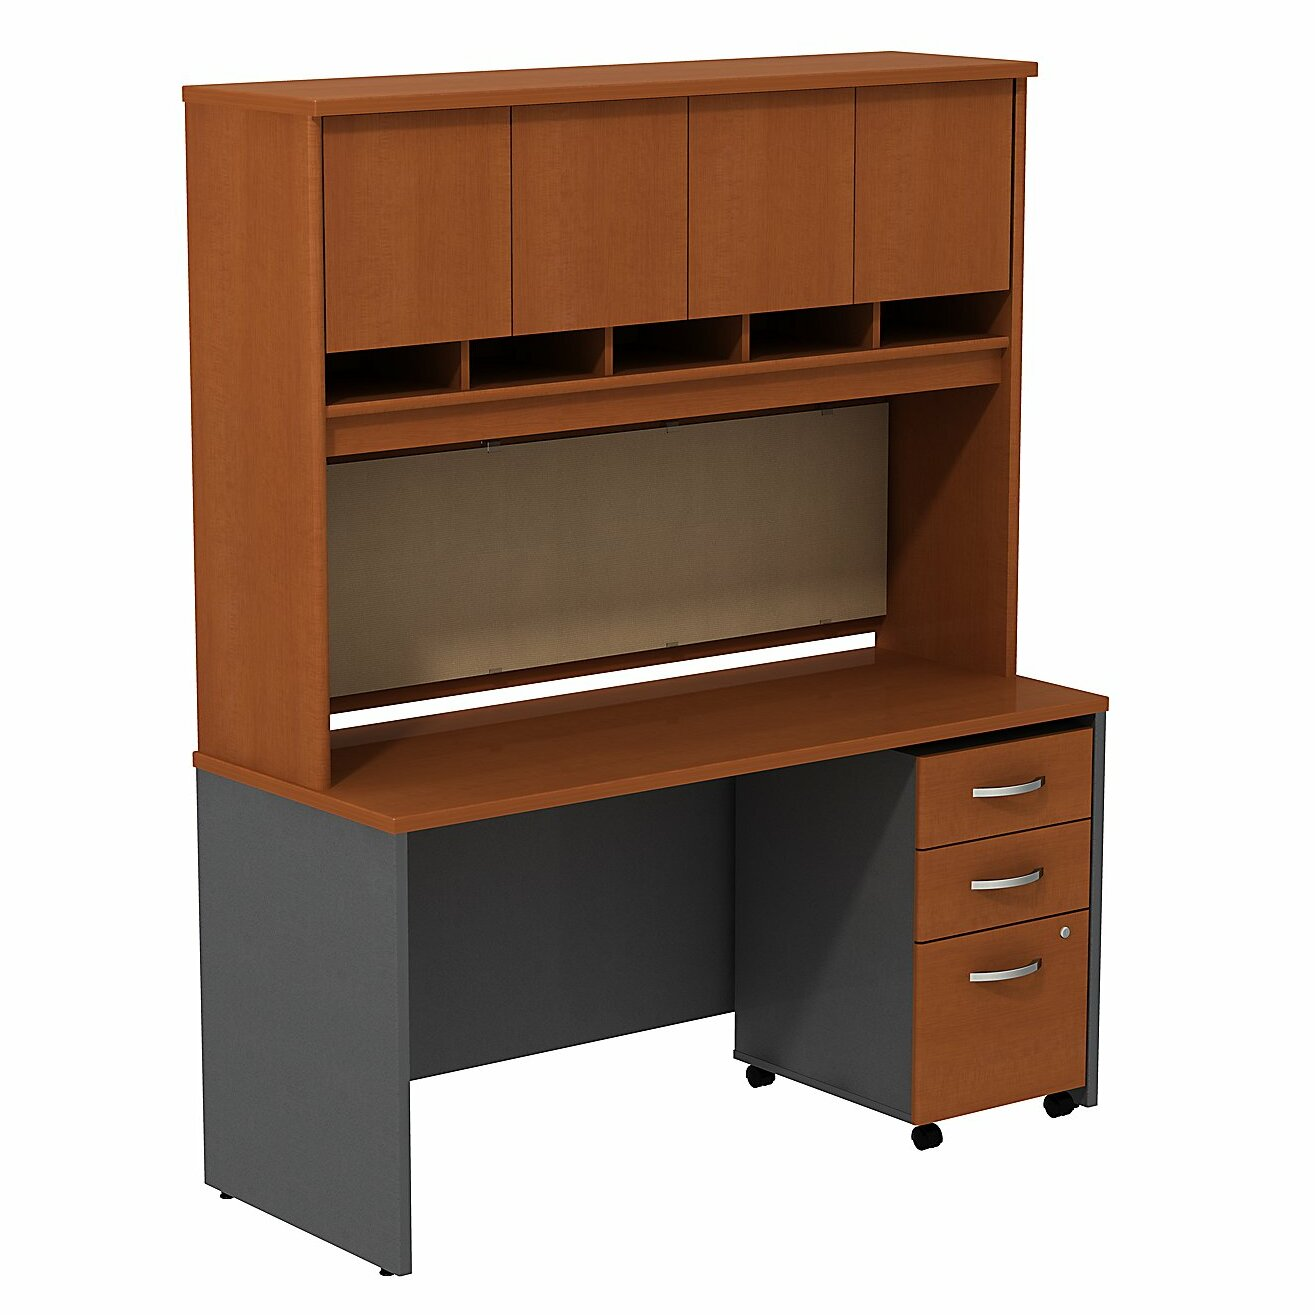 Series c desk credenza shell with 4 doors hutch and 3 drawers mobile pedestal wayfair - Mobile credenza ...